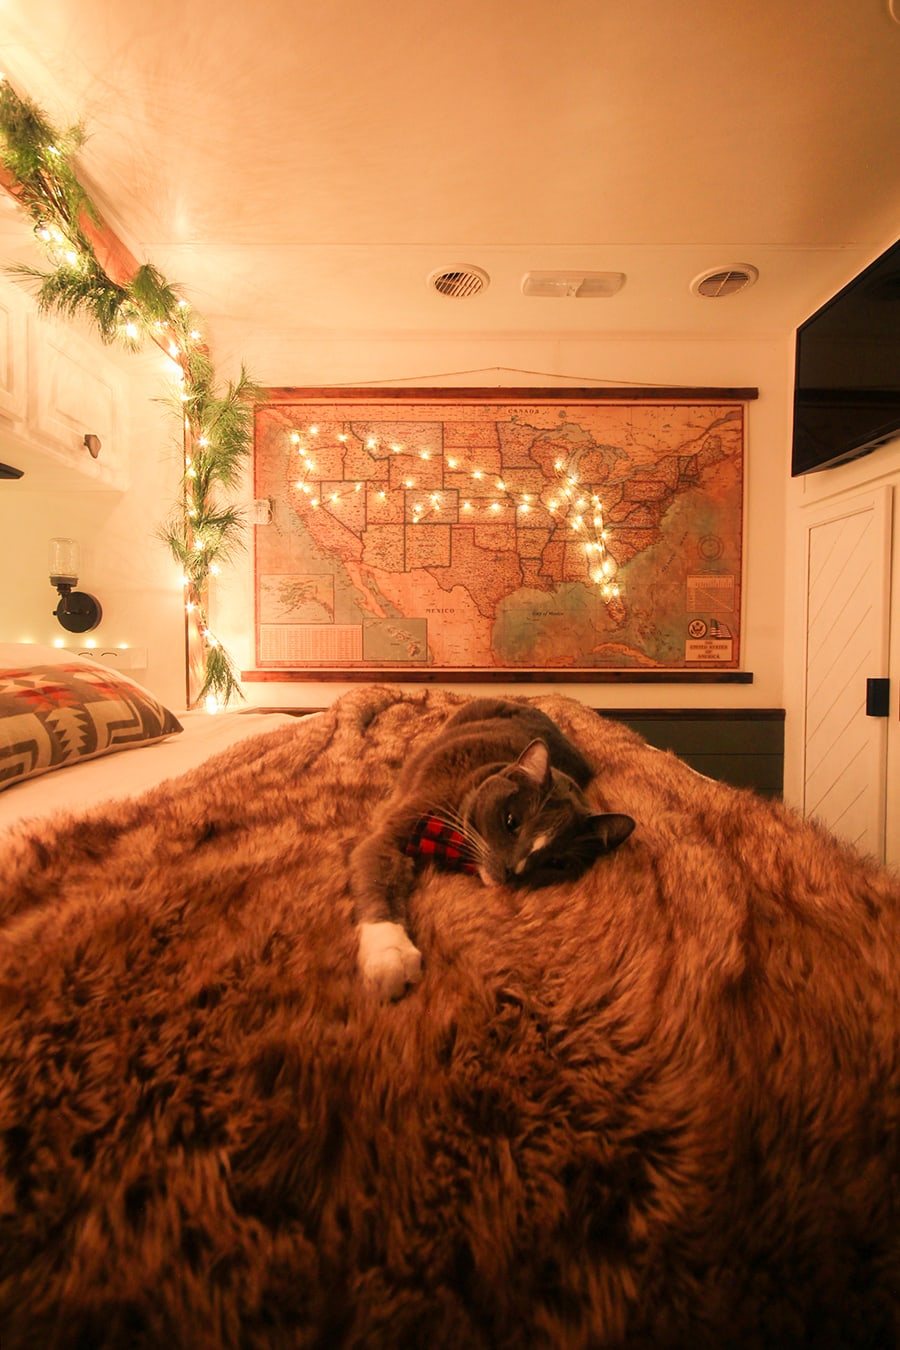 Christmas cat wearing bow tie in RV